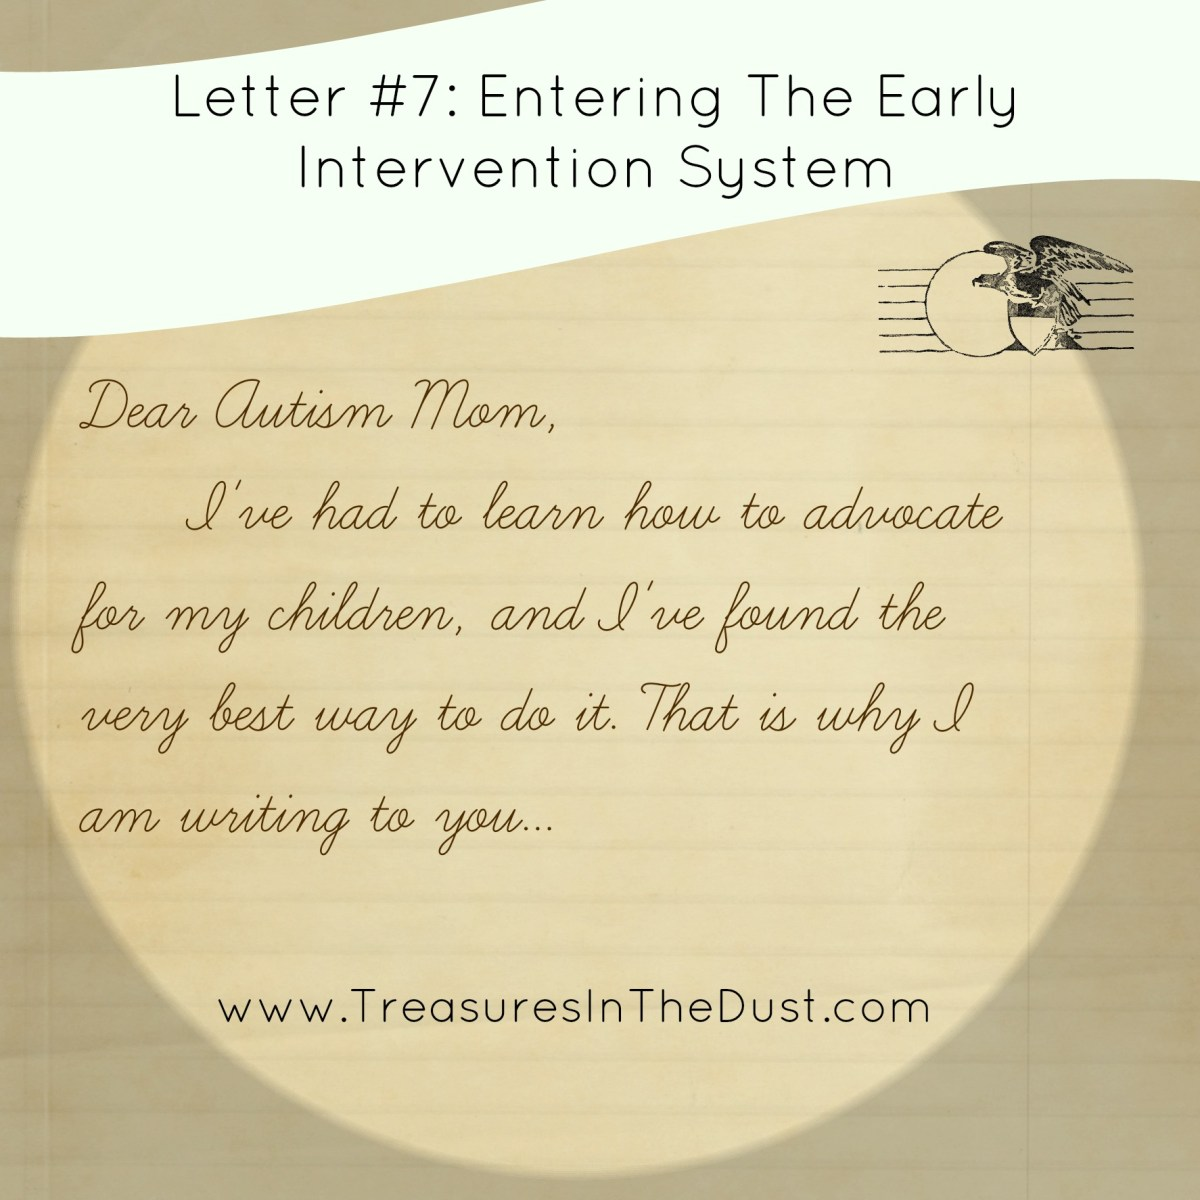 Letter #7: Entering The Early Intervention System